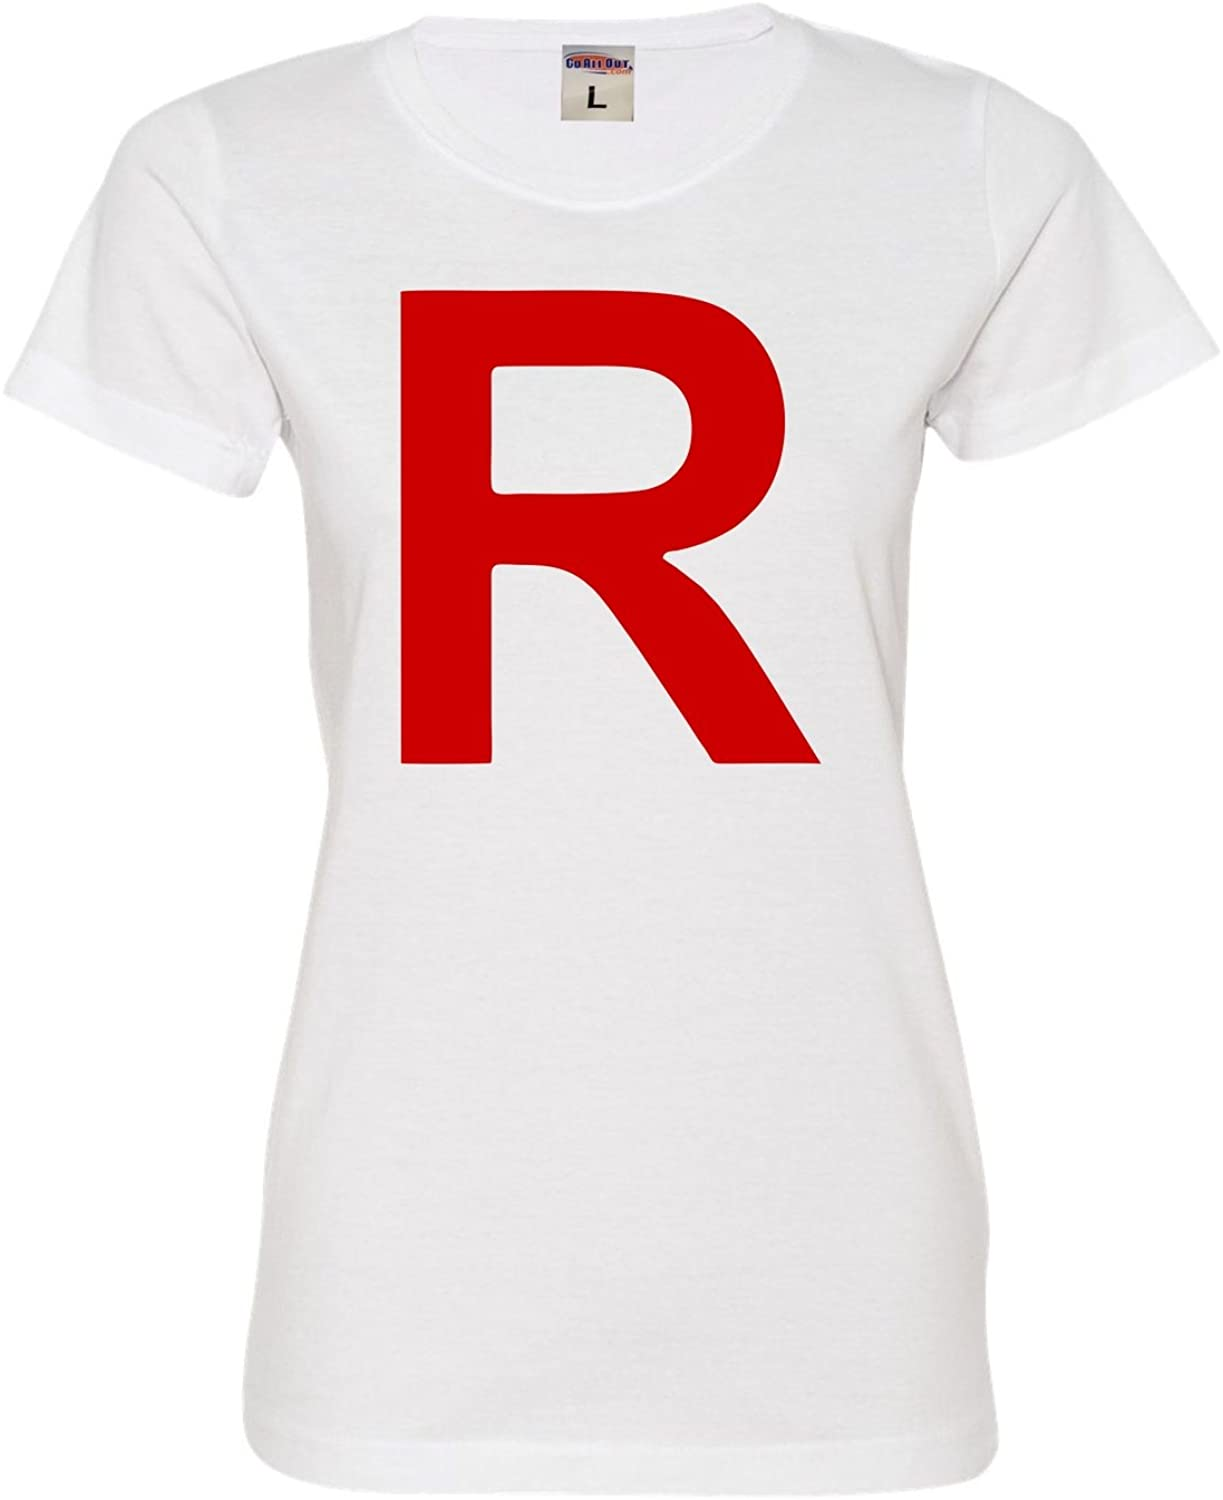 Go All Out Womens Team Rocket Deluxe Soft T-Shirt